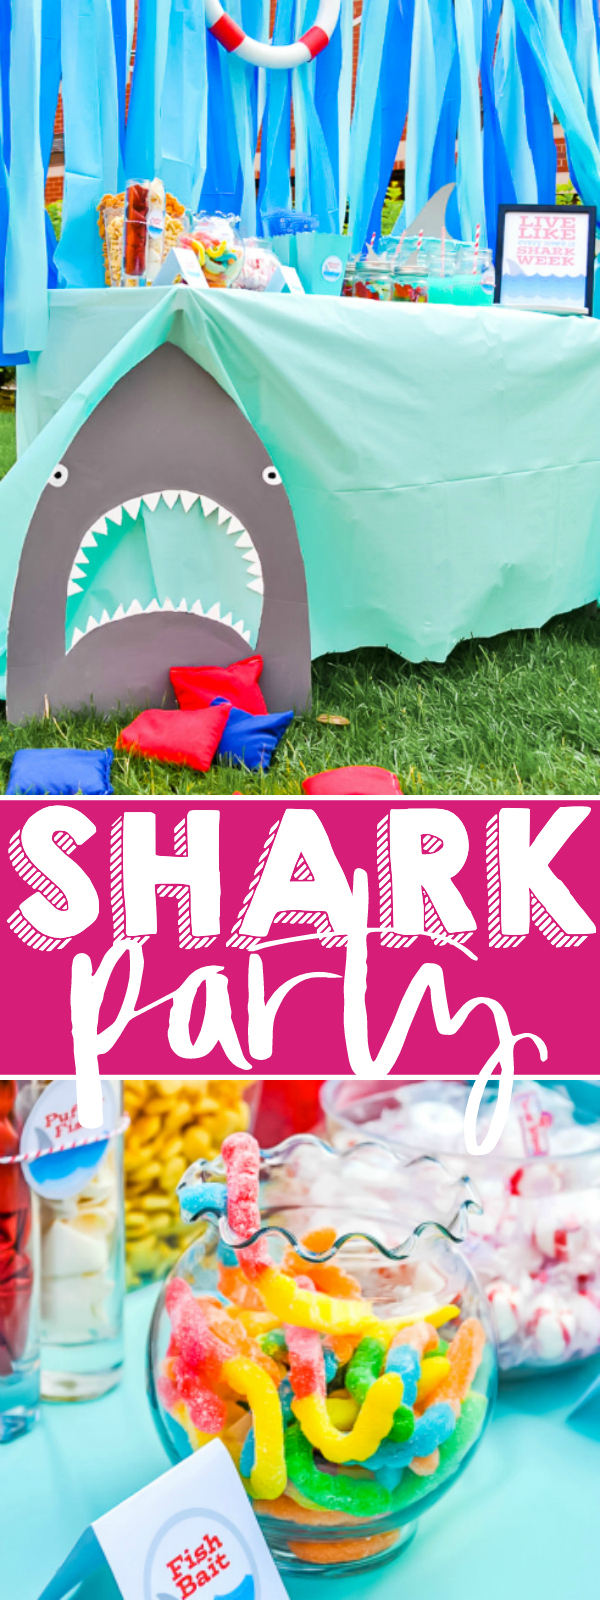 Live Every Week Like It's Shark Week - Throw a fun Shark Party with lots of ocean themed party details. It's the perfect summer birthday party theme or pool party idea! Plus download free printables! | The Love Nerds #summerparty